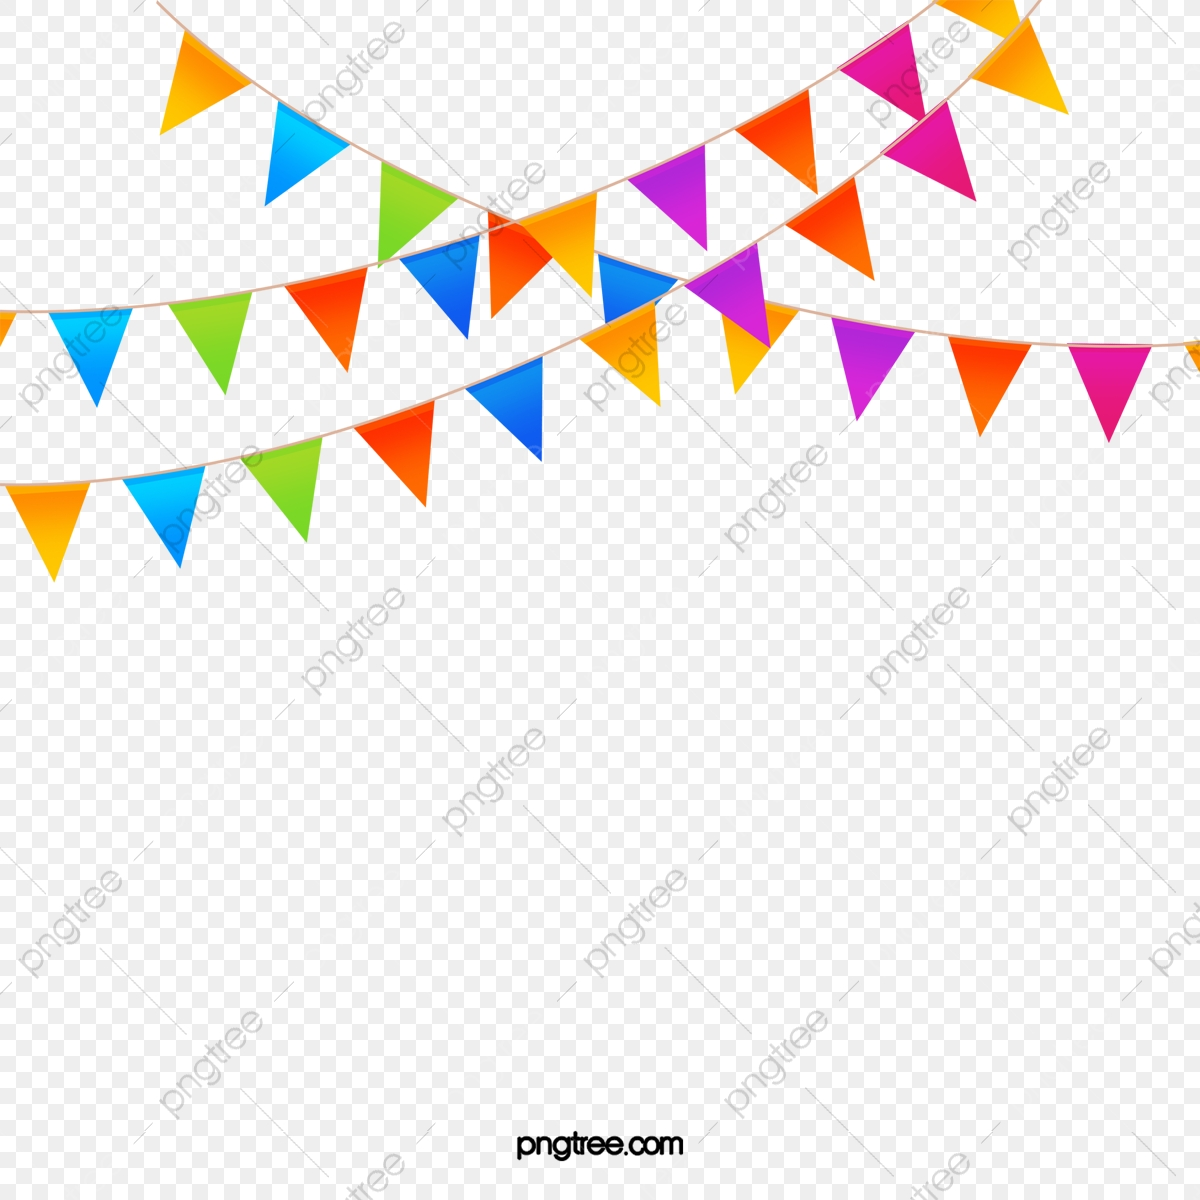 Triangle Banner Png - Bunting, Pennant, Banner PNG Transparent Clipart Image and PSD ...